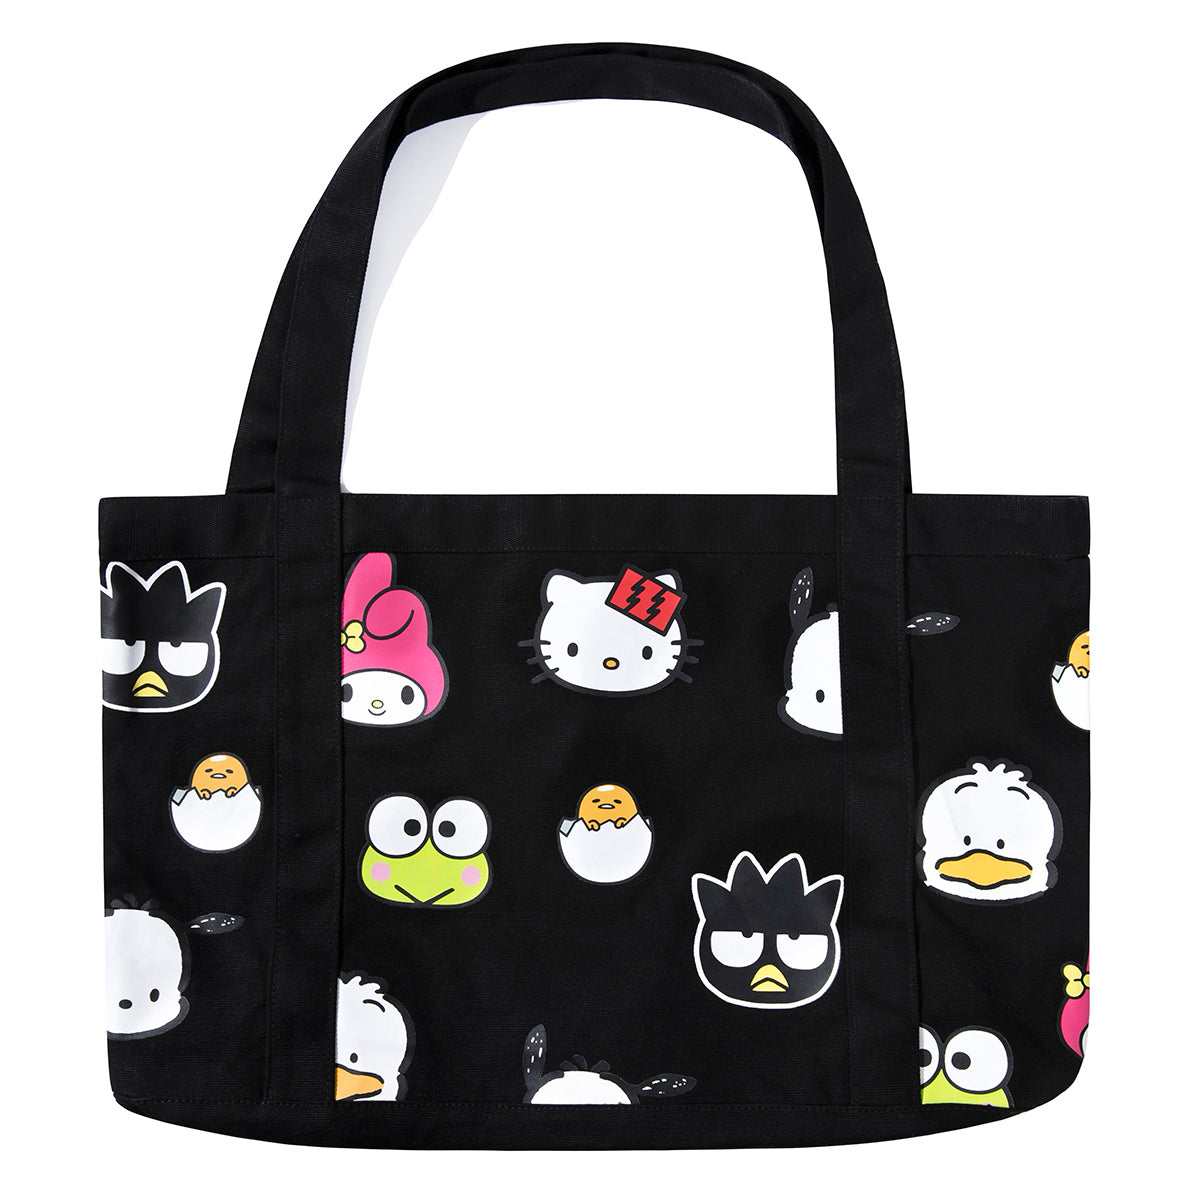 The Hundreds x Sanrio Characters Tote Bag Black